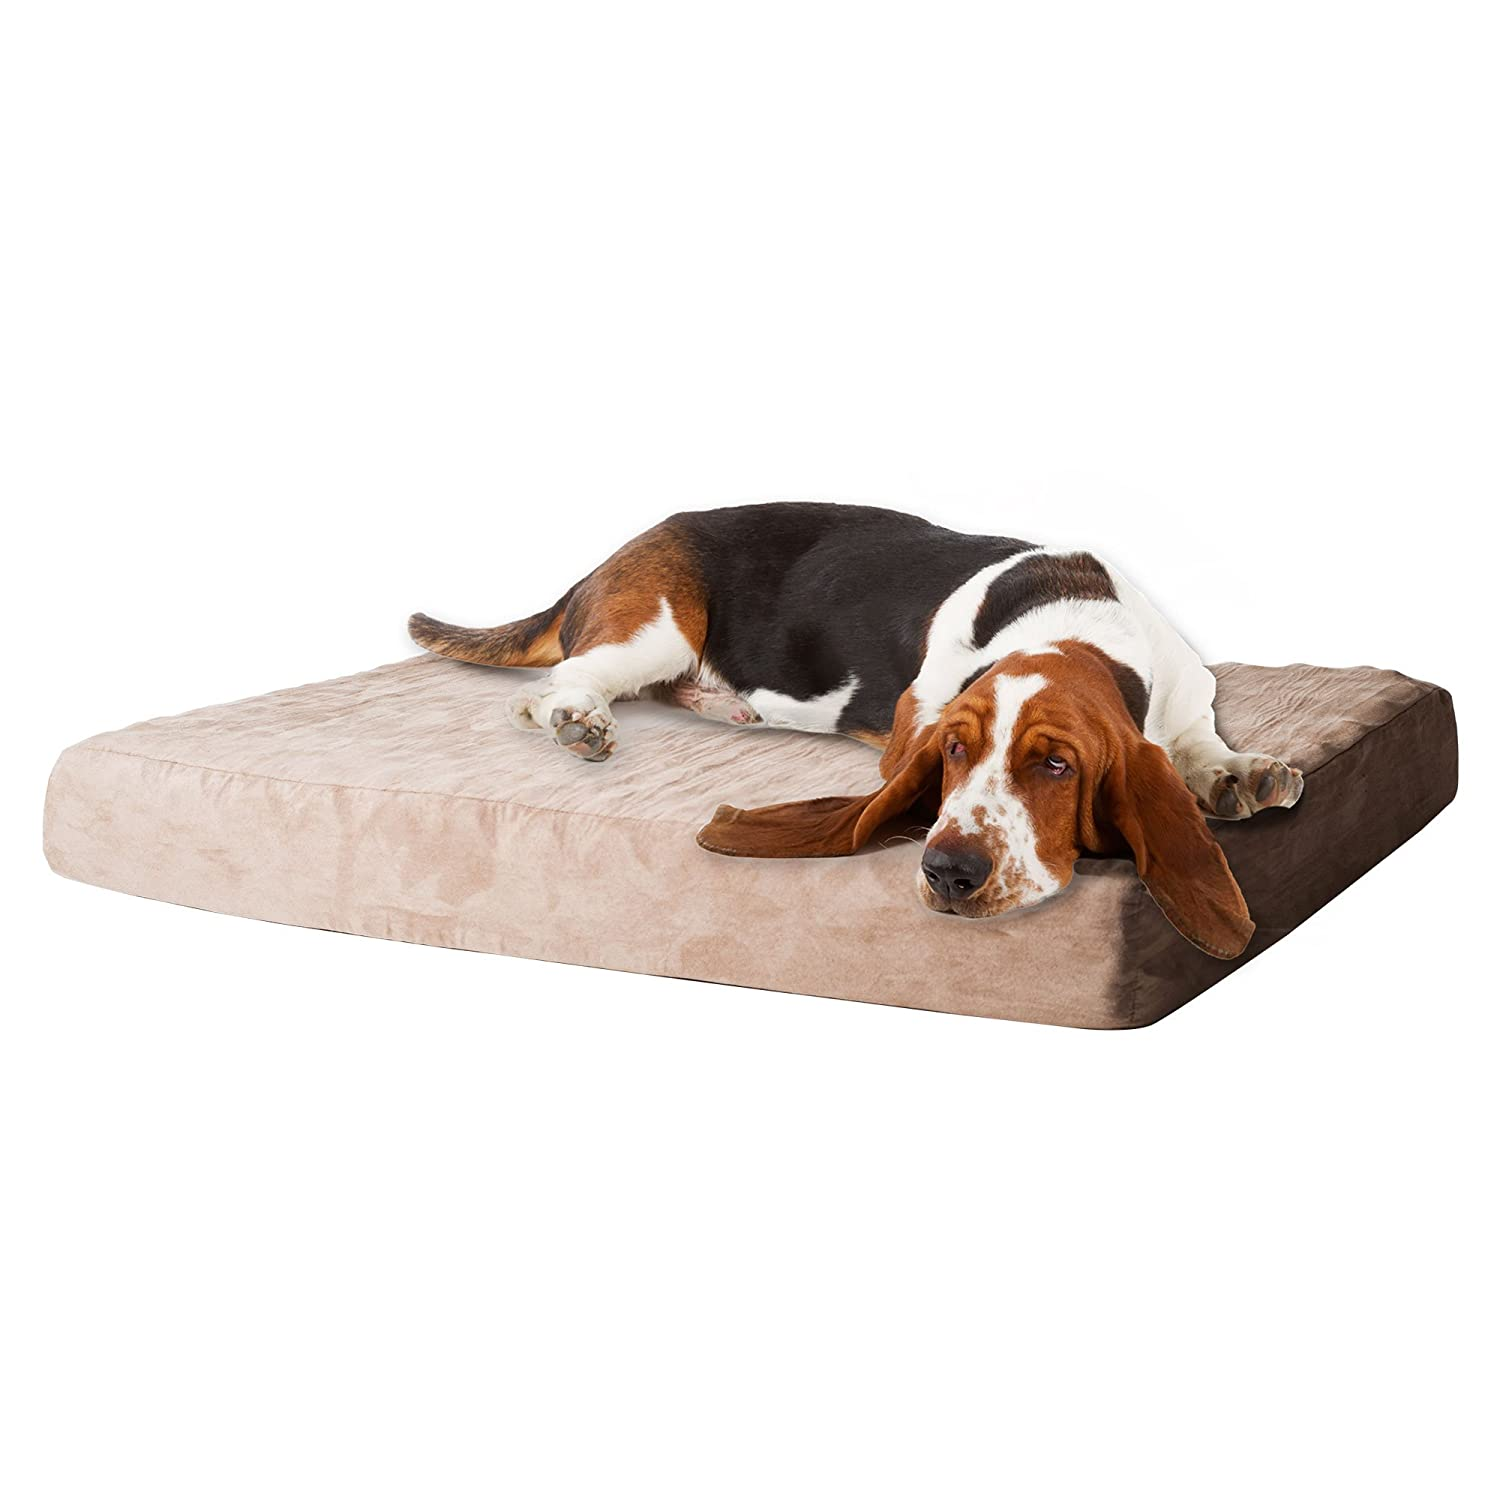 dog orvis memory dogs couch bed amazon large foam direct com lbs beds